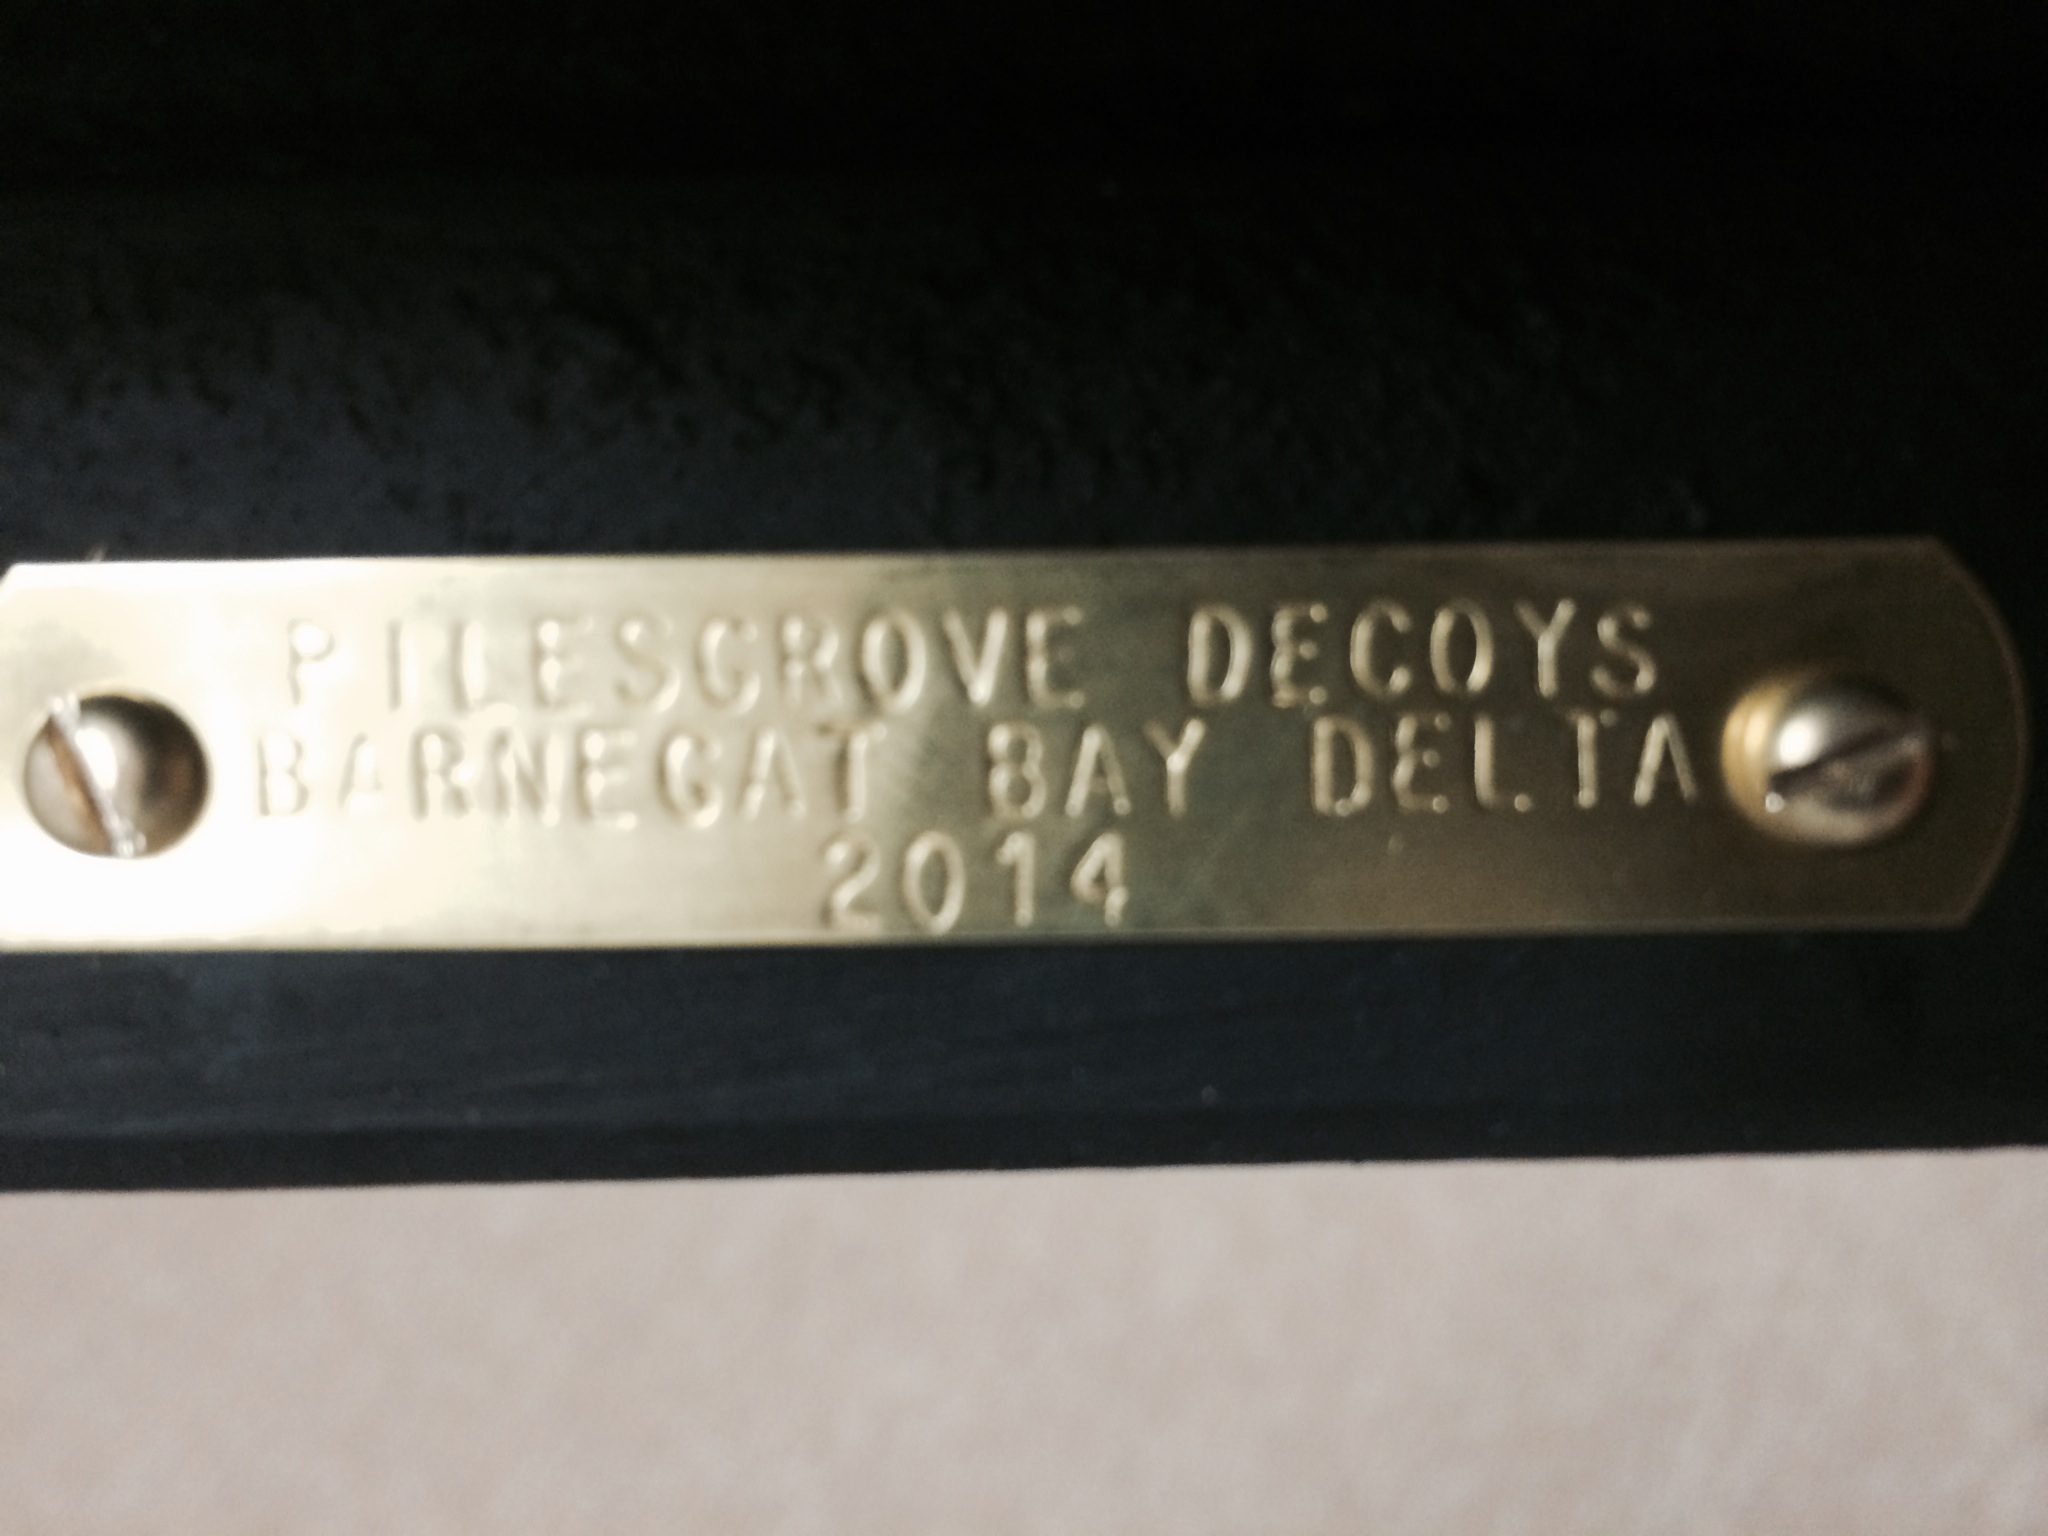 2014 decoy tag.jpg